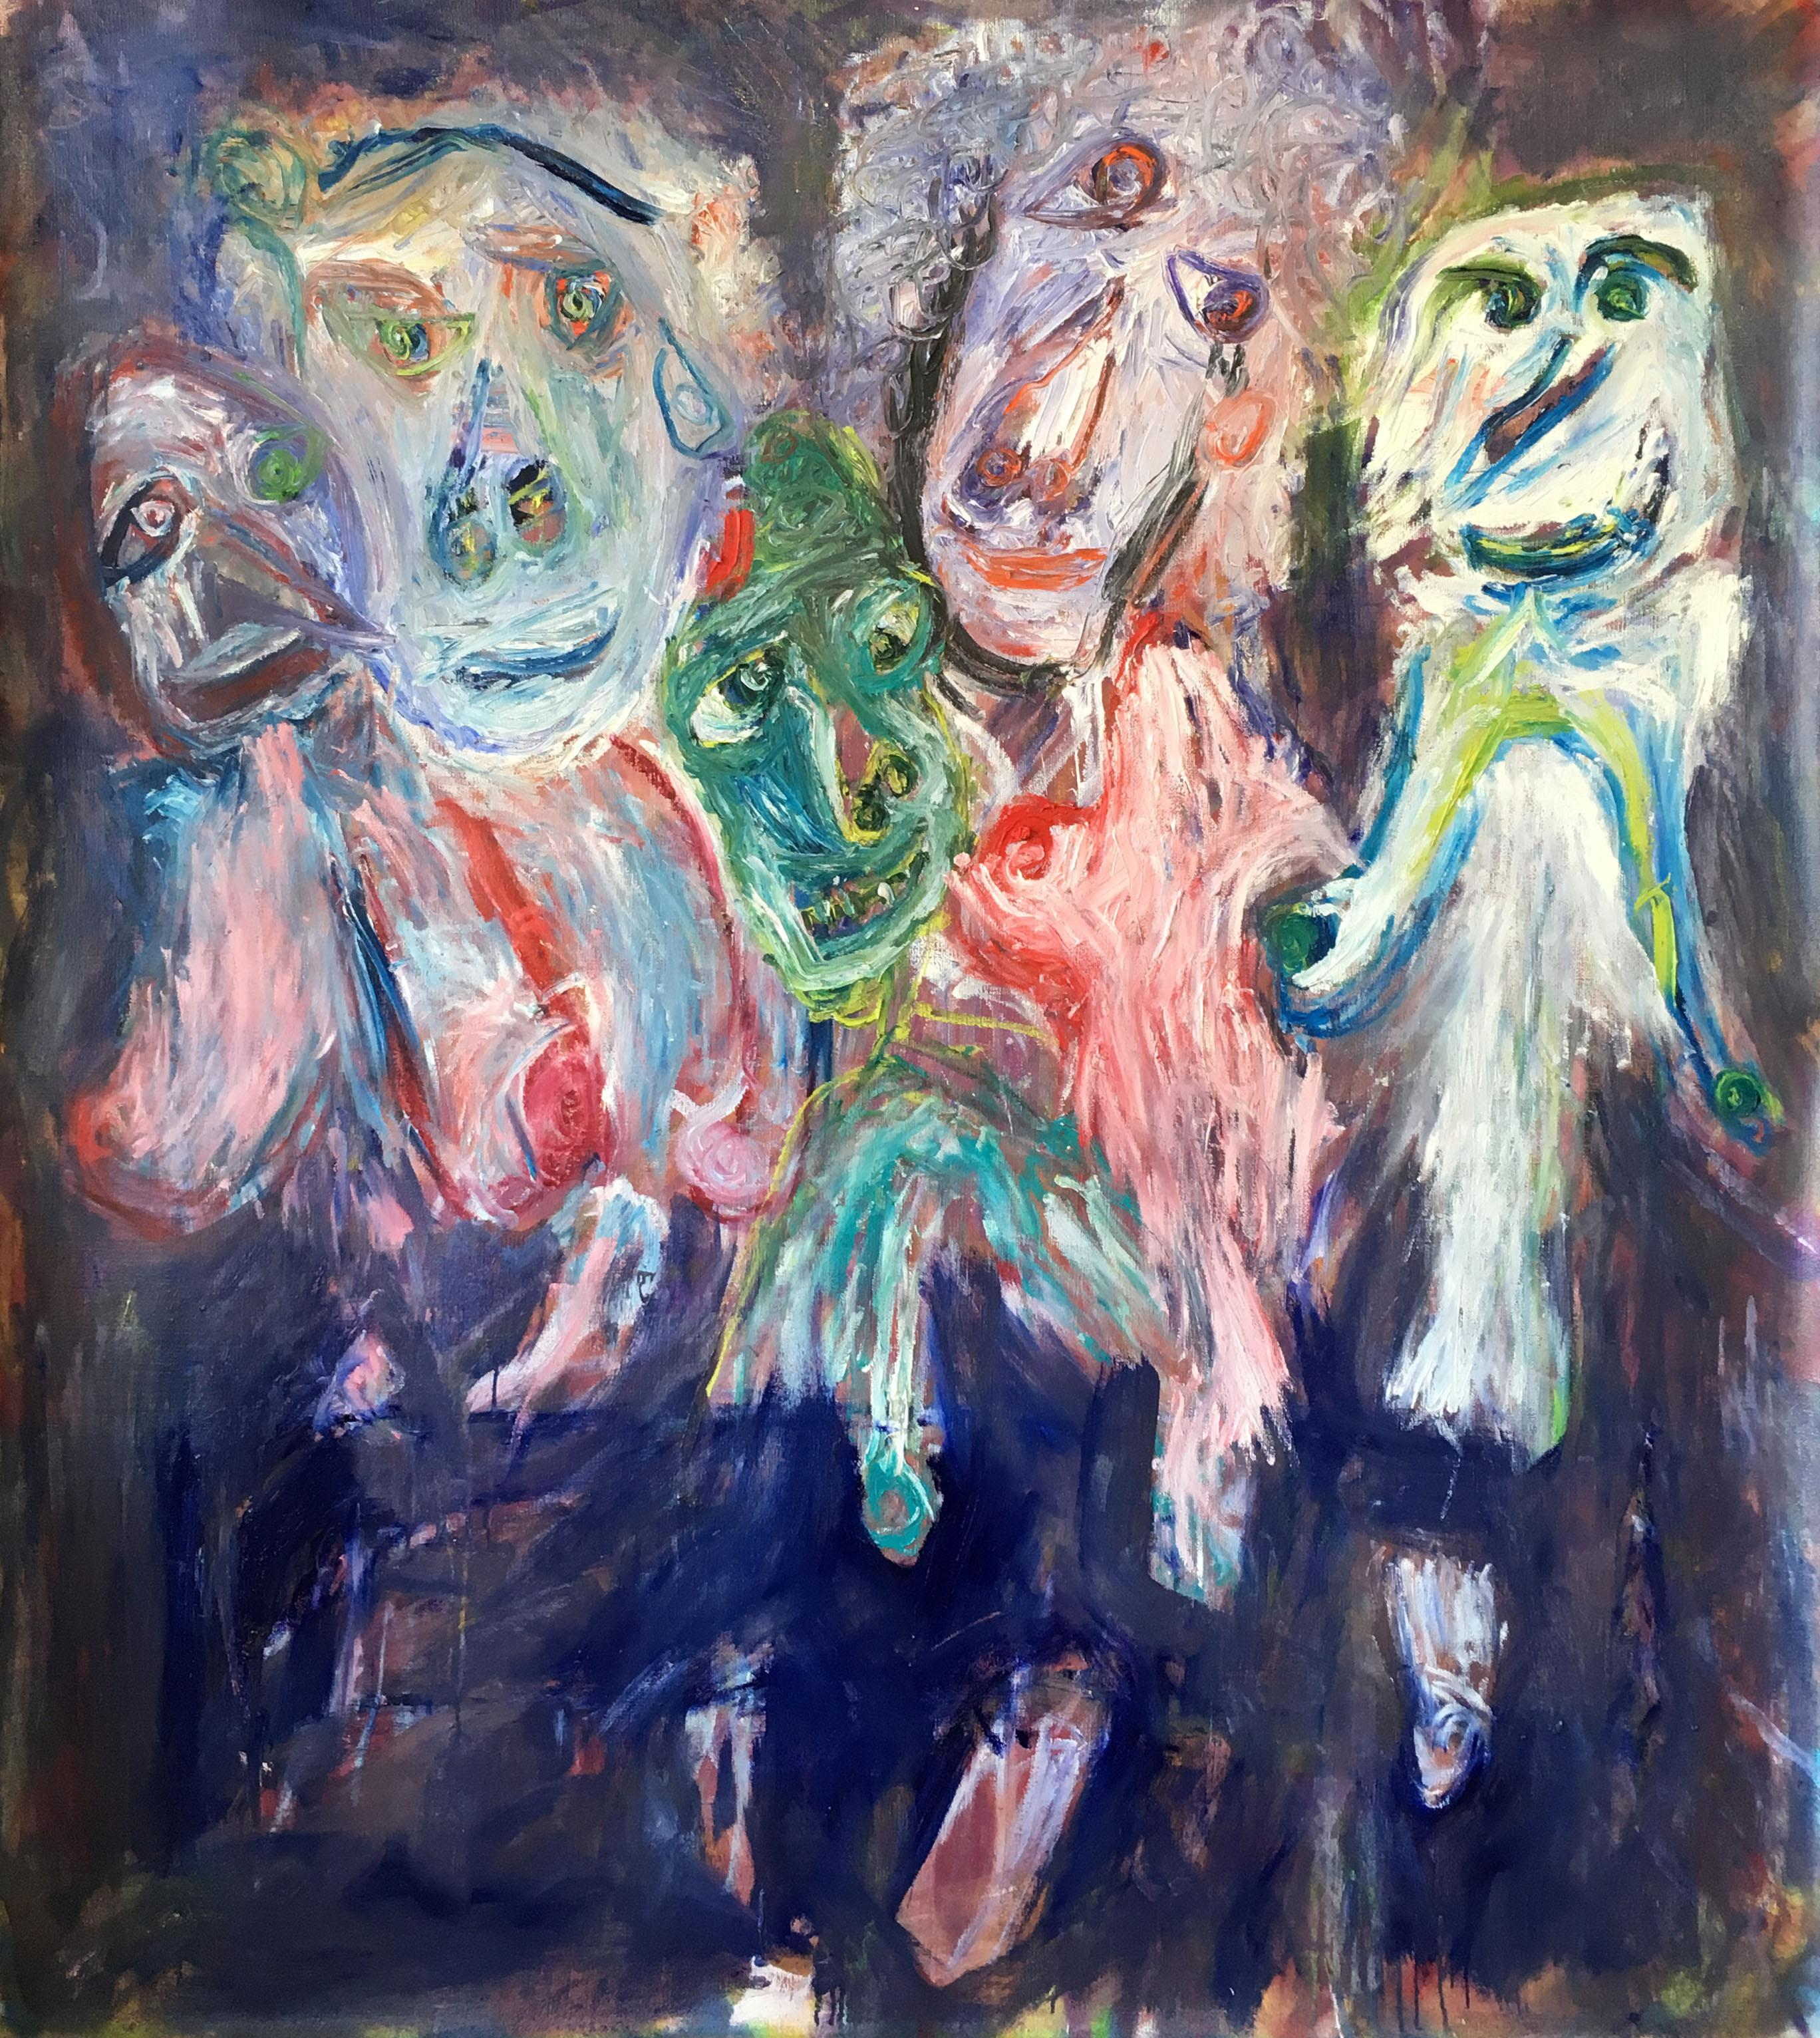 Isa, Génie, Catou, Patoche and Didine - Julien Wolf, 21st Century, Painting